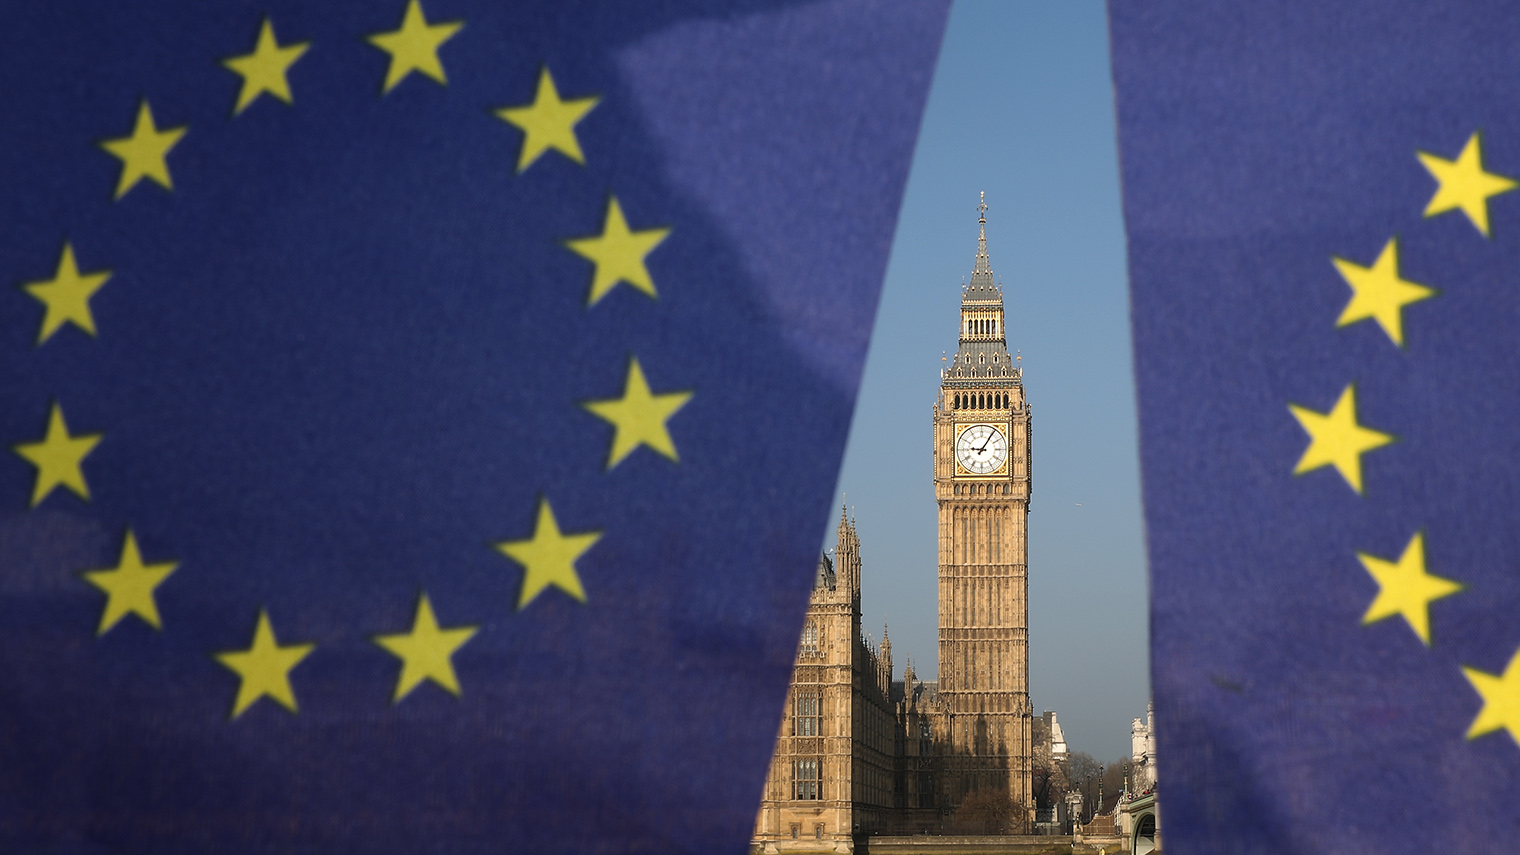 LONDON, ENGLAND - MARCH 28: (EDITORS NOTE: This is a photo illustration.) EU flags outside the Houses of Parliament on March 28, 2017 in London, England. Article 50 will be triggered on March 29, and the process that will take Britain out of the European Union will begin. (Photo by Dan Kitwood/Getty Images)